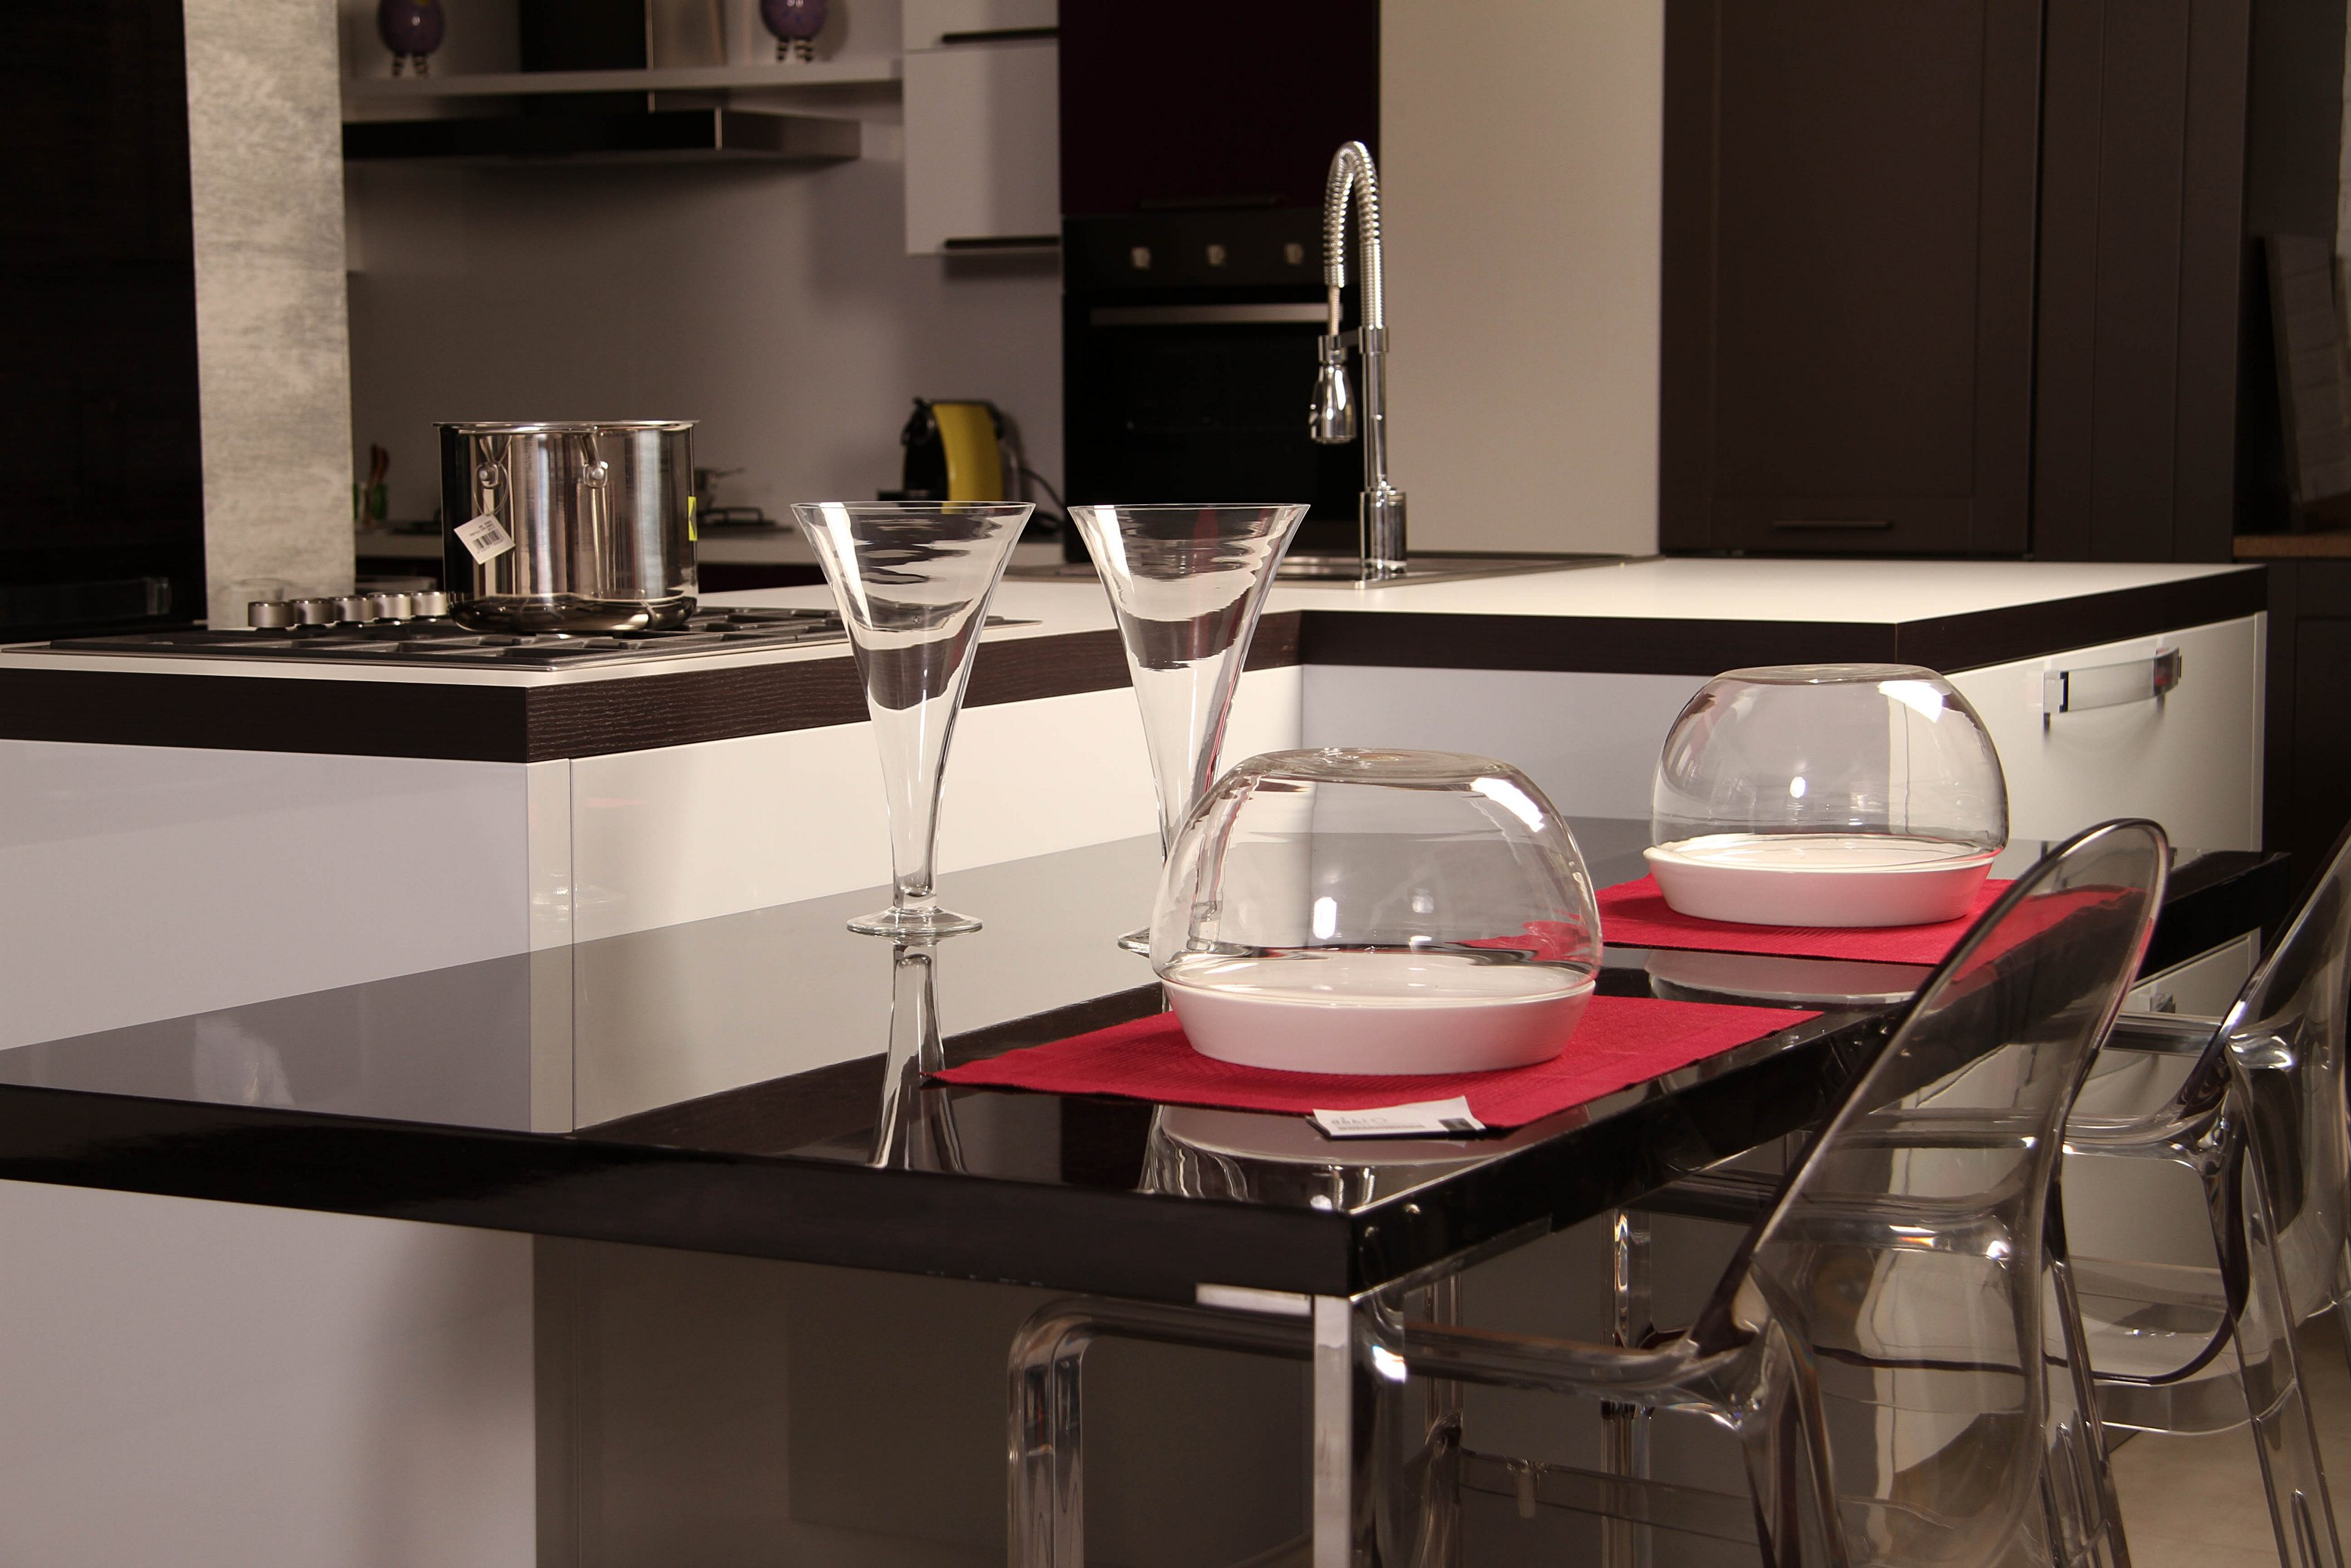 Outlet Cucine Design. Perfect Cucina Moderna Design Urban In ...